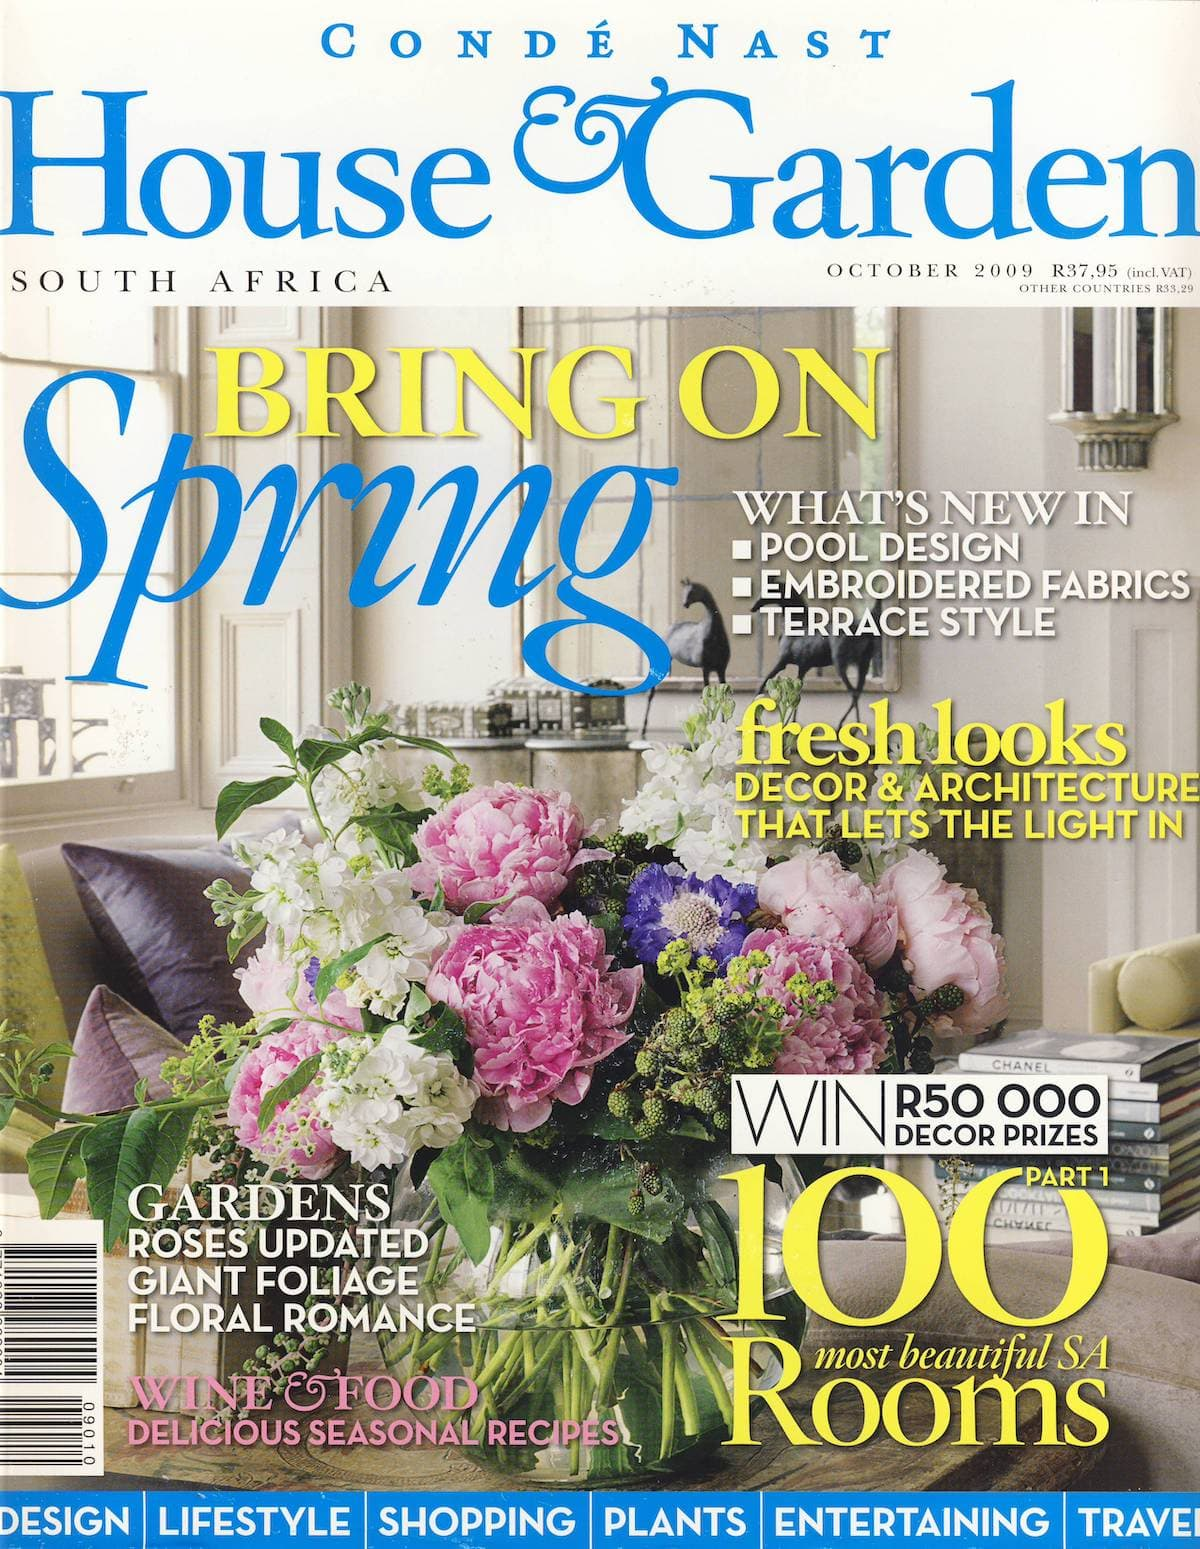 2009 House & Garden Most Beautiful Rooms Cover